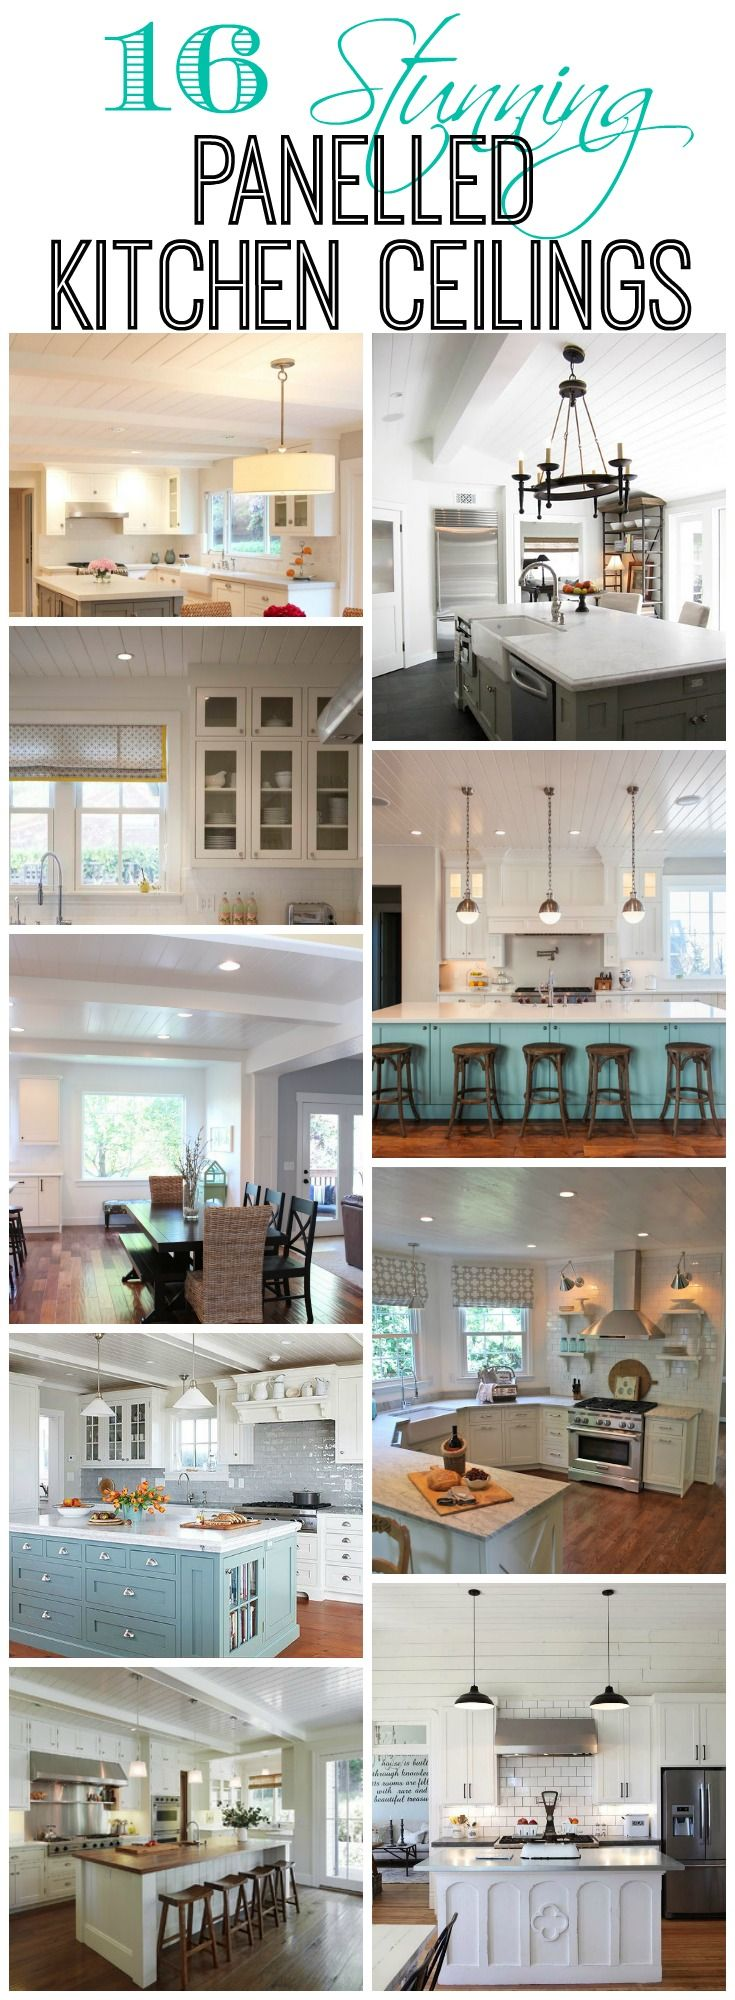 Uncategorized Kitchen Ceilings Ideas best 25 kitchen ceilings ideas on pinterest living room ceiling 16 stunning panelled at the happy housie